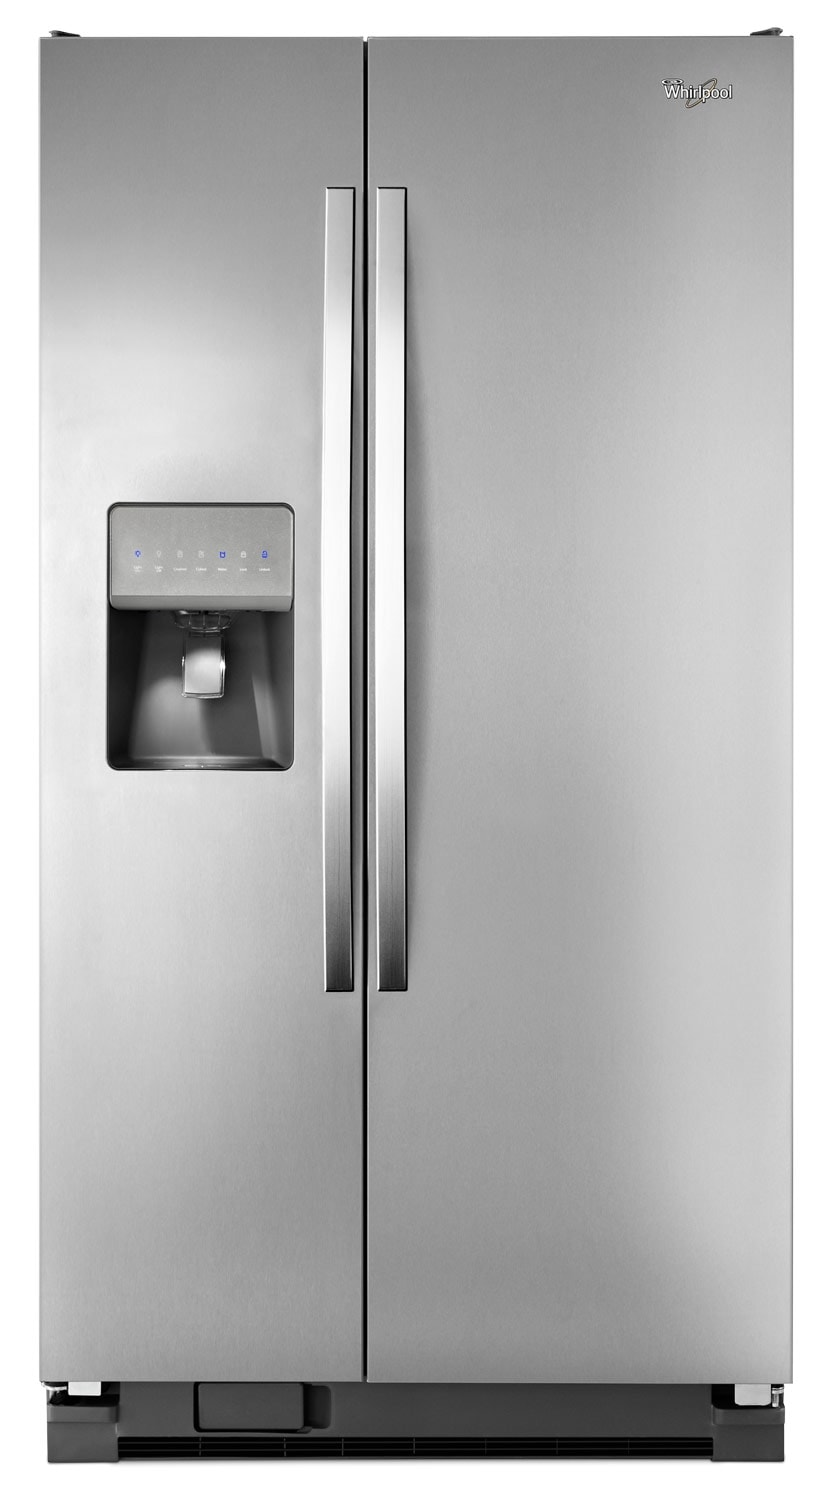 Refrigerators and Freezers - Whirlpool Stainless Steel Side-by-Side Refrigerator (24.5 Cu. Ft.) - WRS335FDDM